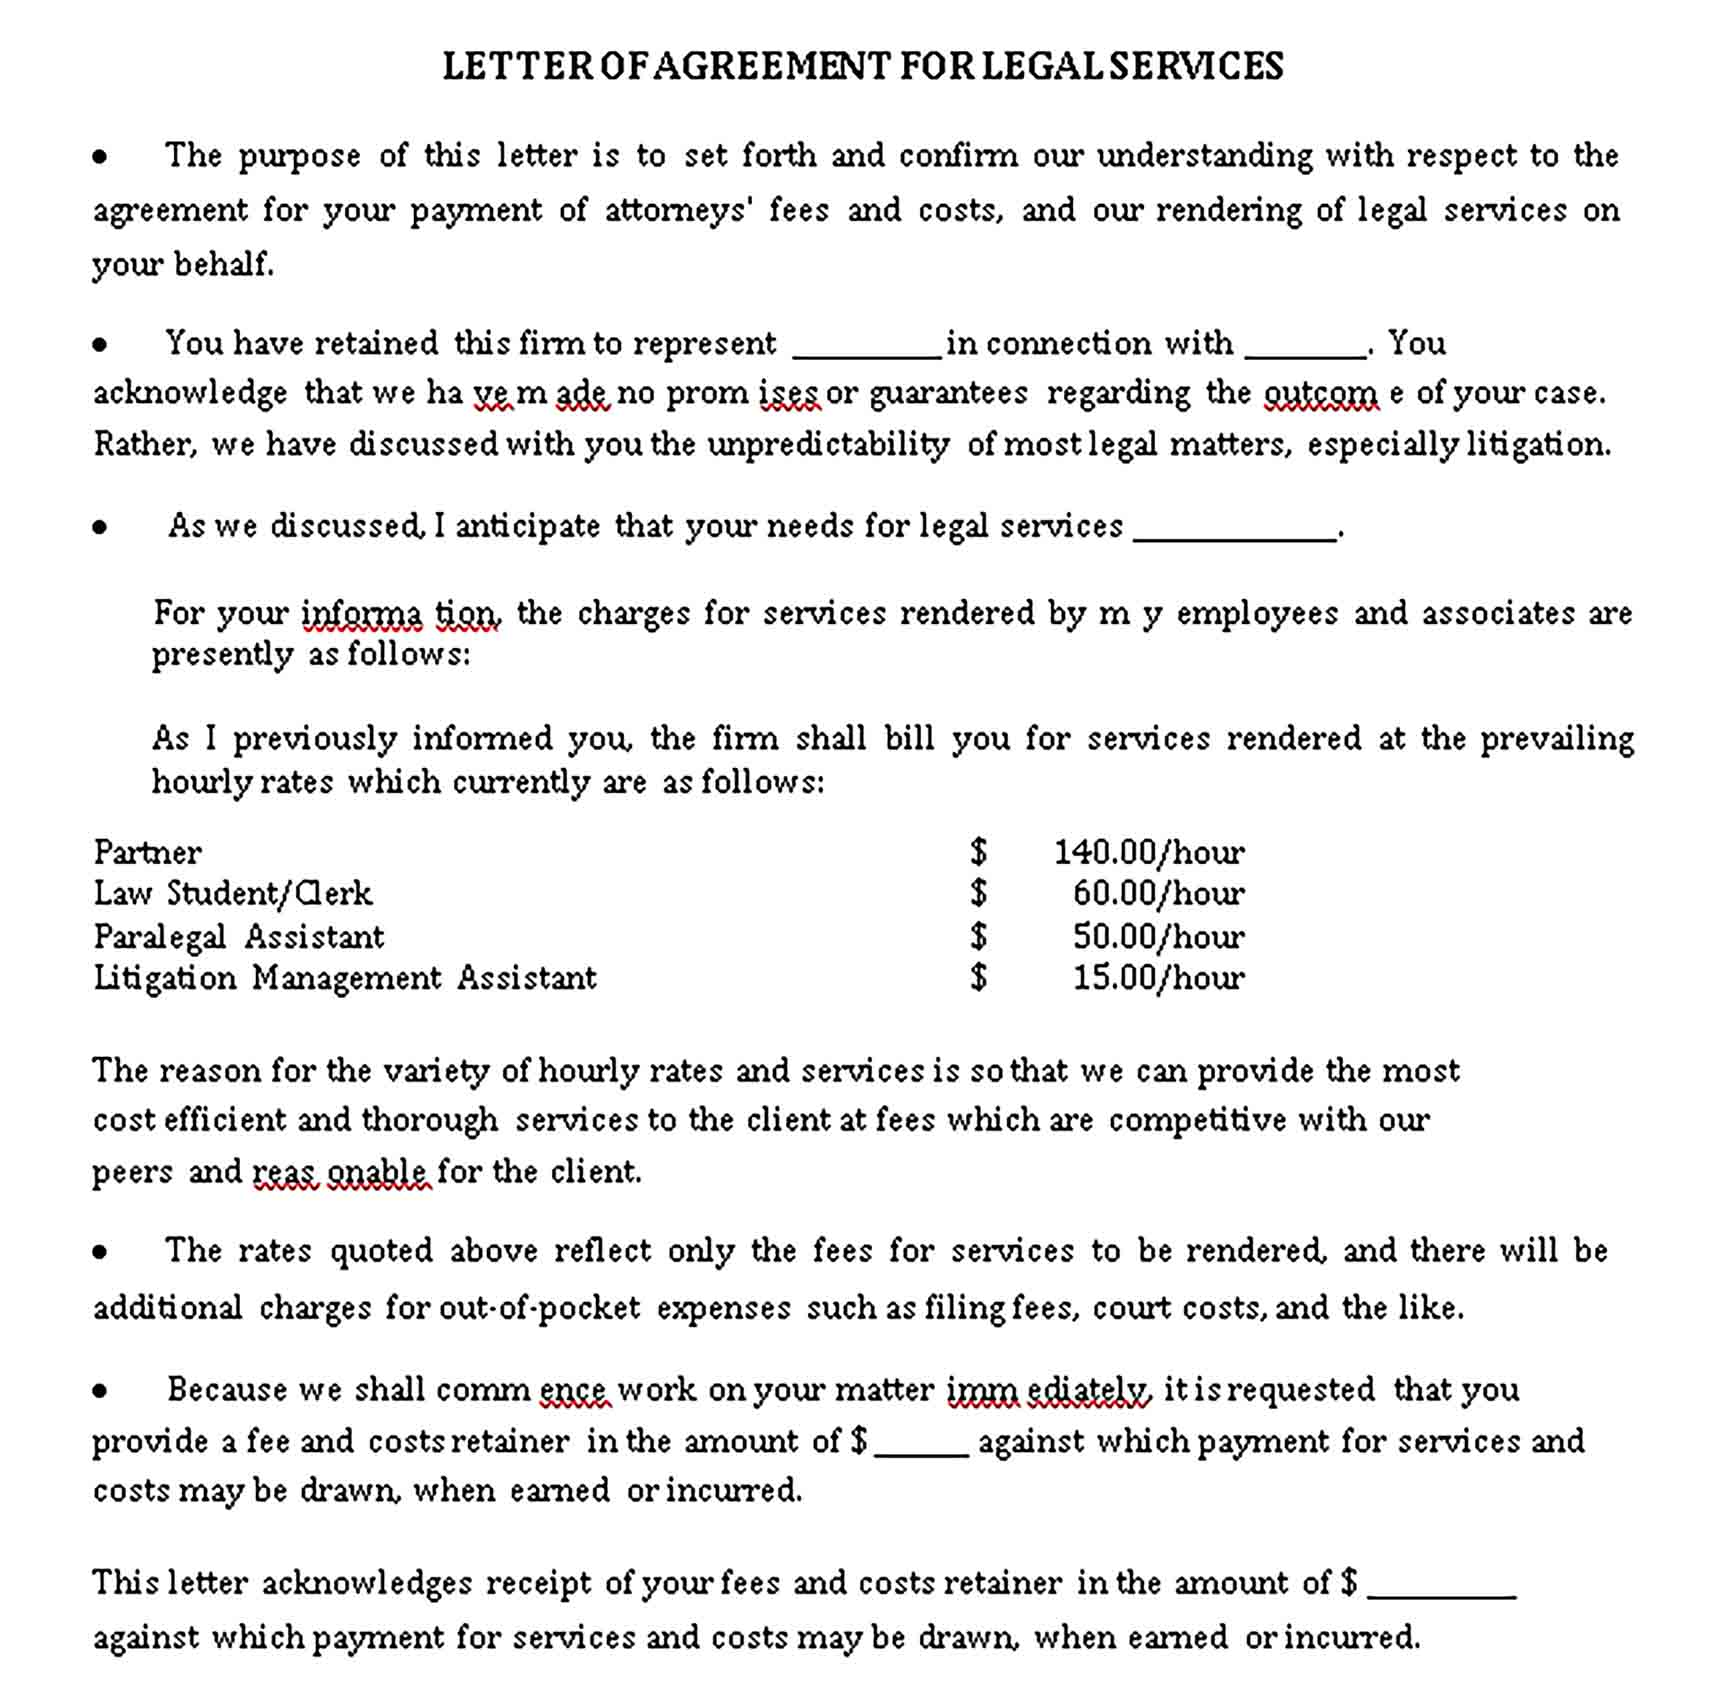 Templates Letter of Agreement for Legal Services Sample